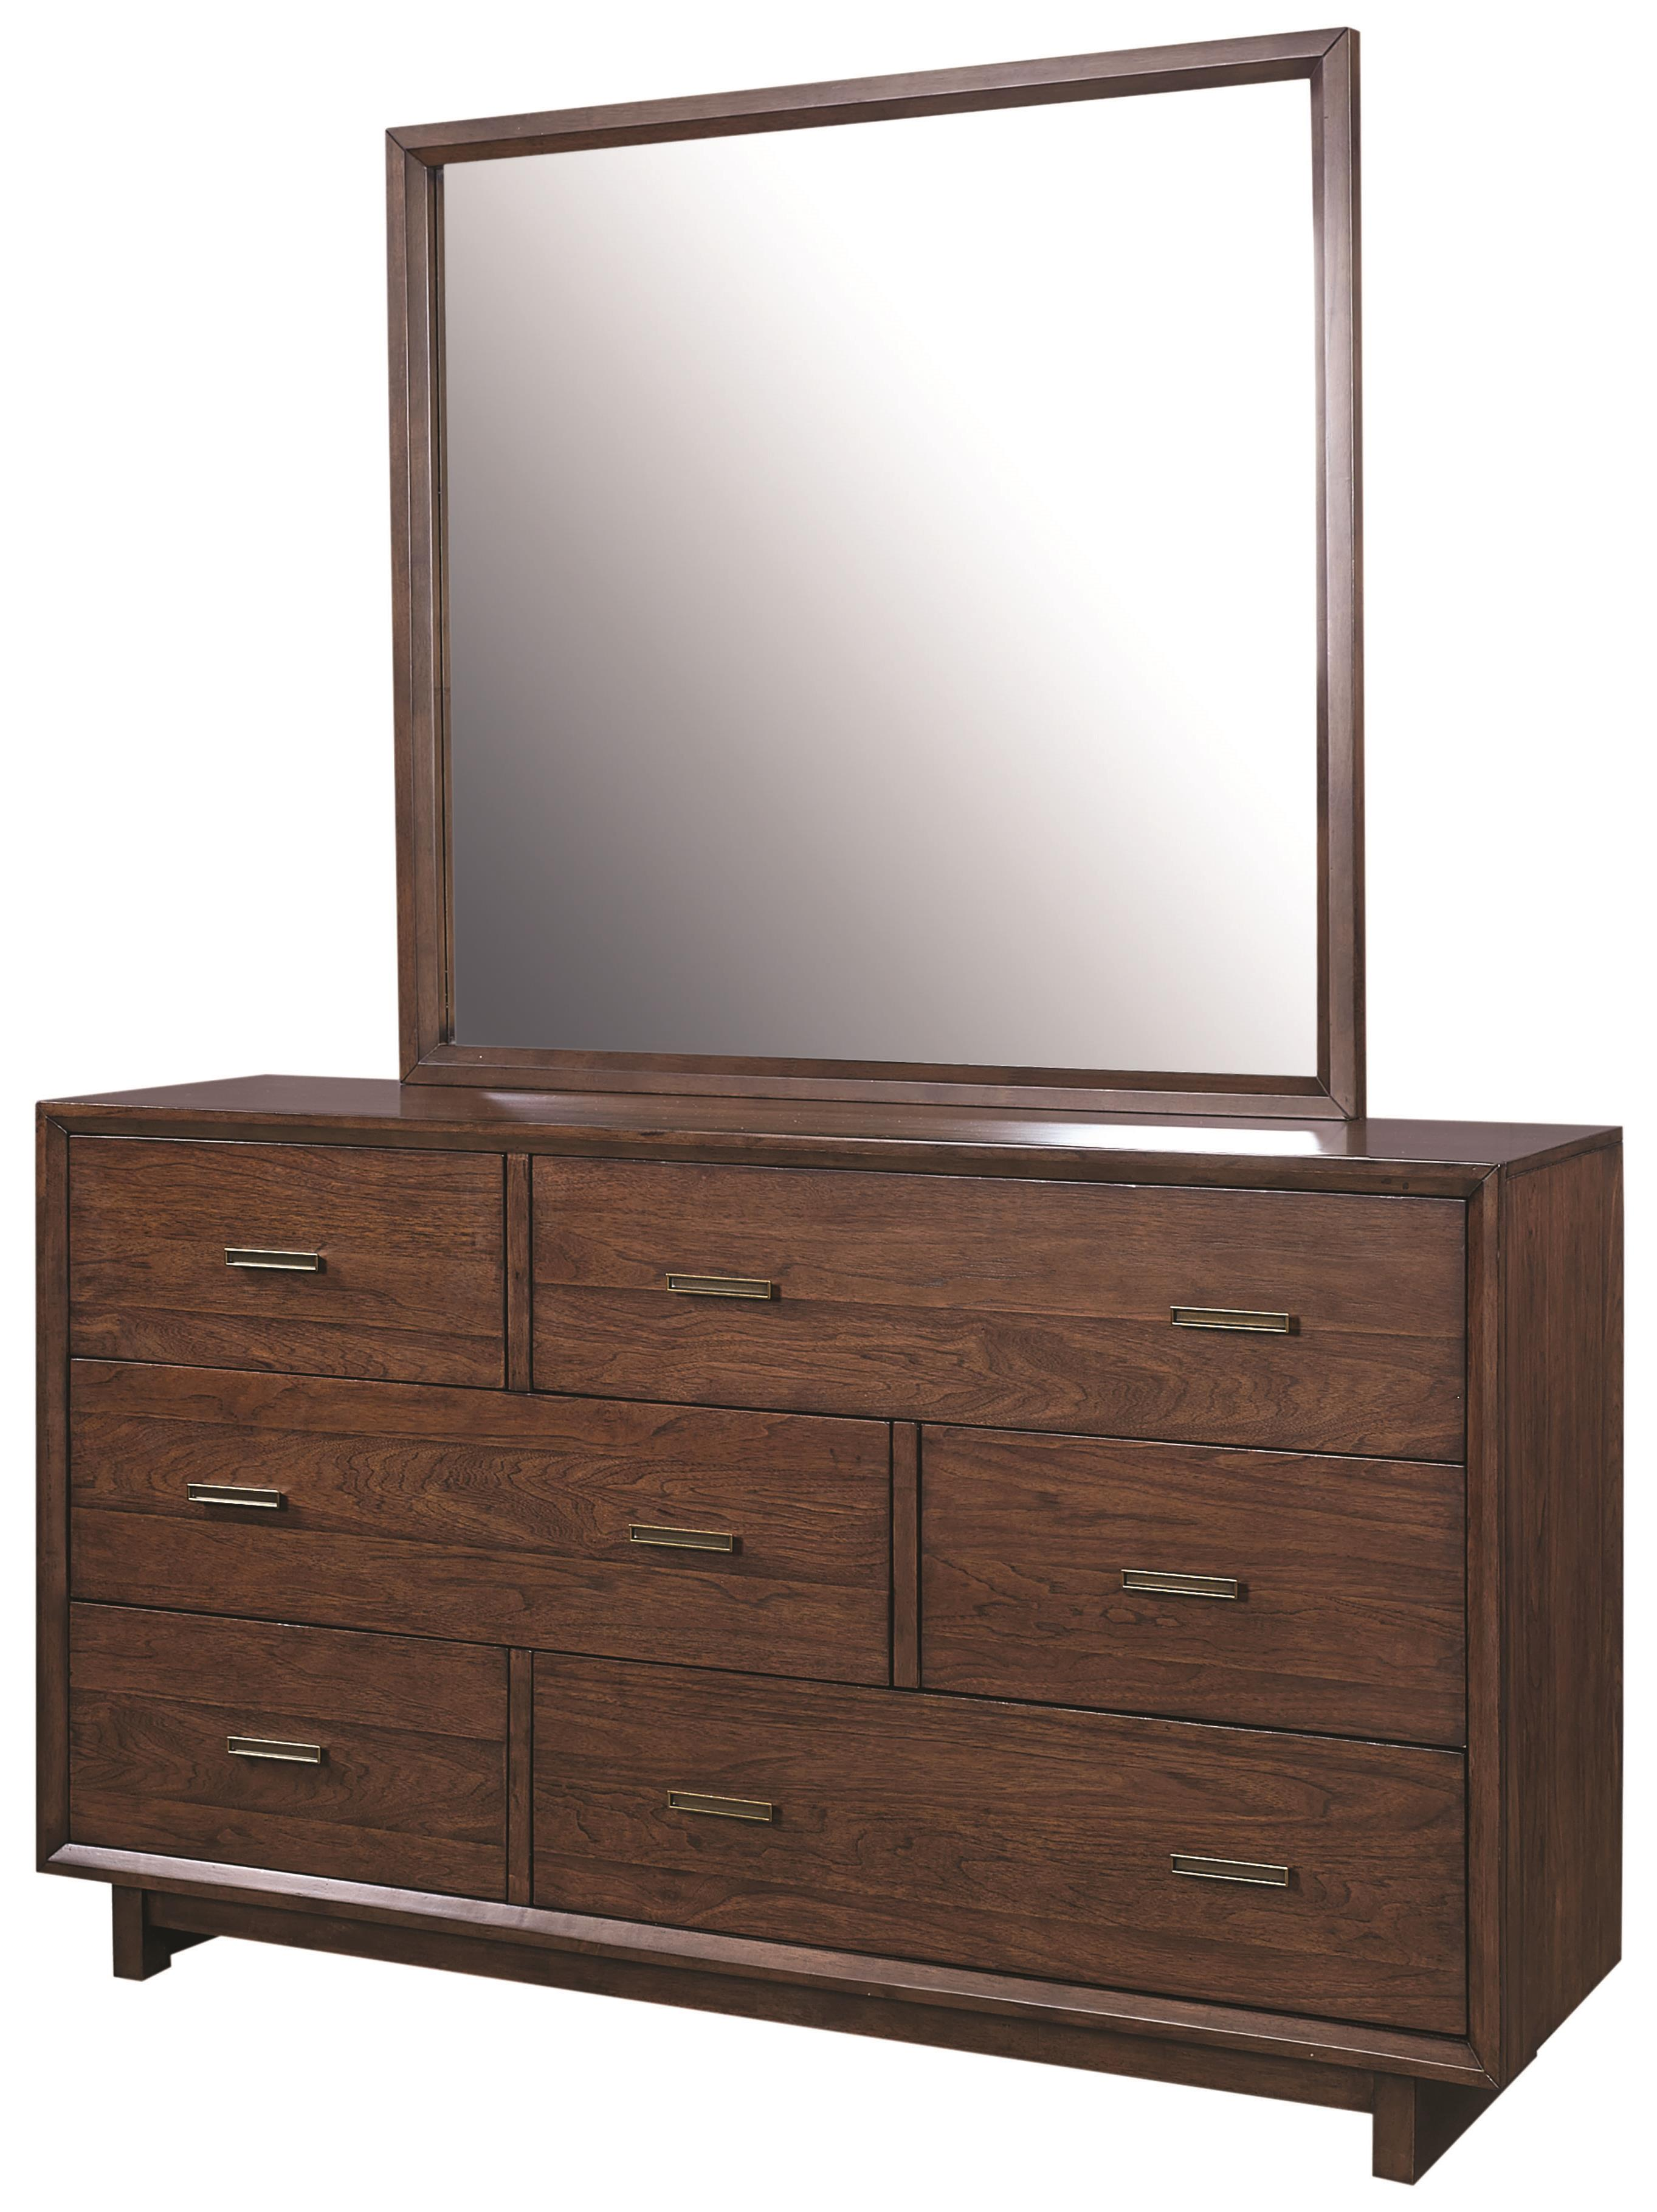 "Aspenhome Walnut Heights 62"" Asymmetrical Dresser and Mirror - Item Number: IWH-453+463"